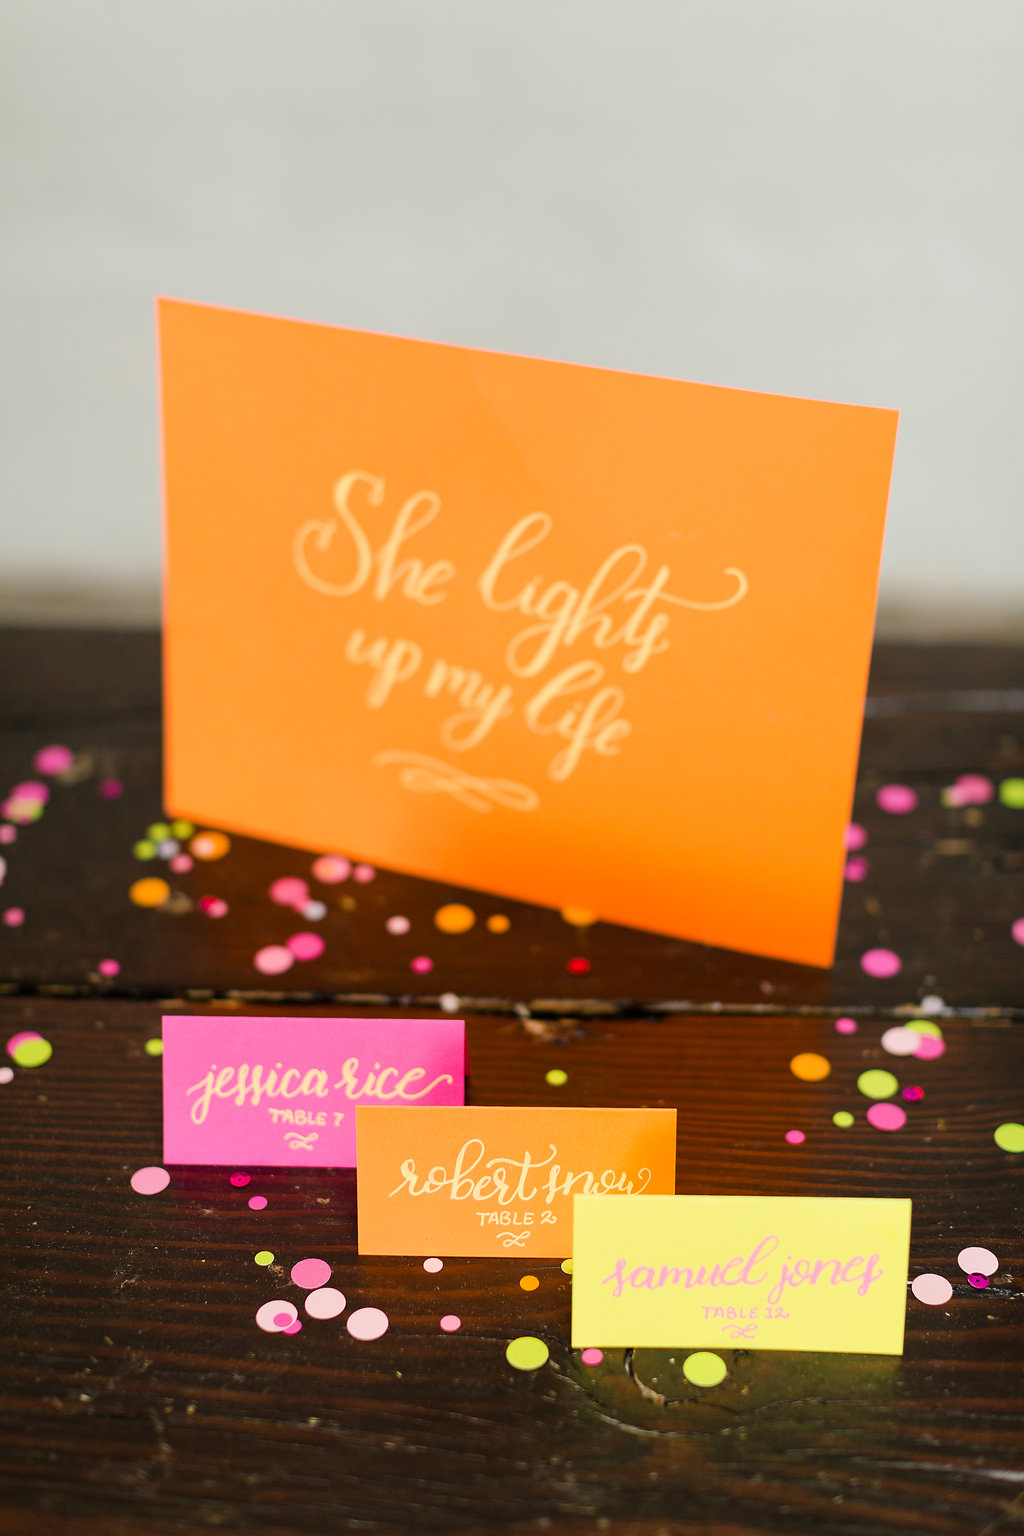 Neon Wedding Inspiration / festive-fetti™ confetti by The Marketplace on Brenda's Wedding Blog / stationery by Darling & Bliss / photo by Jessica Haley Photography